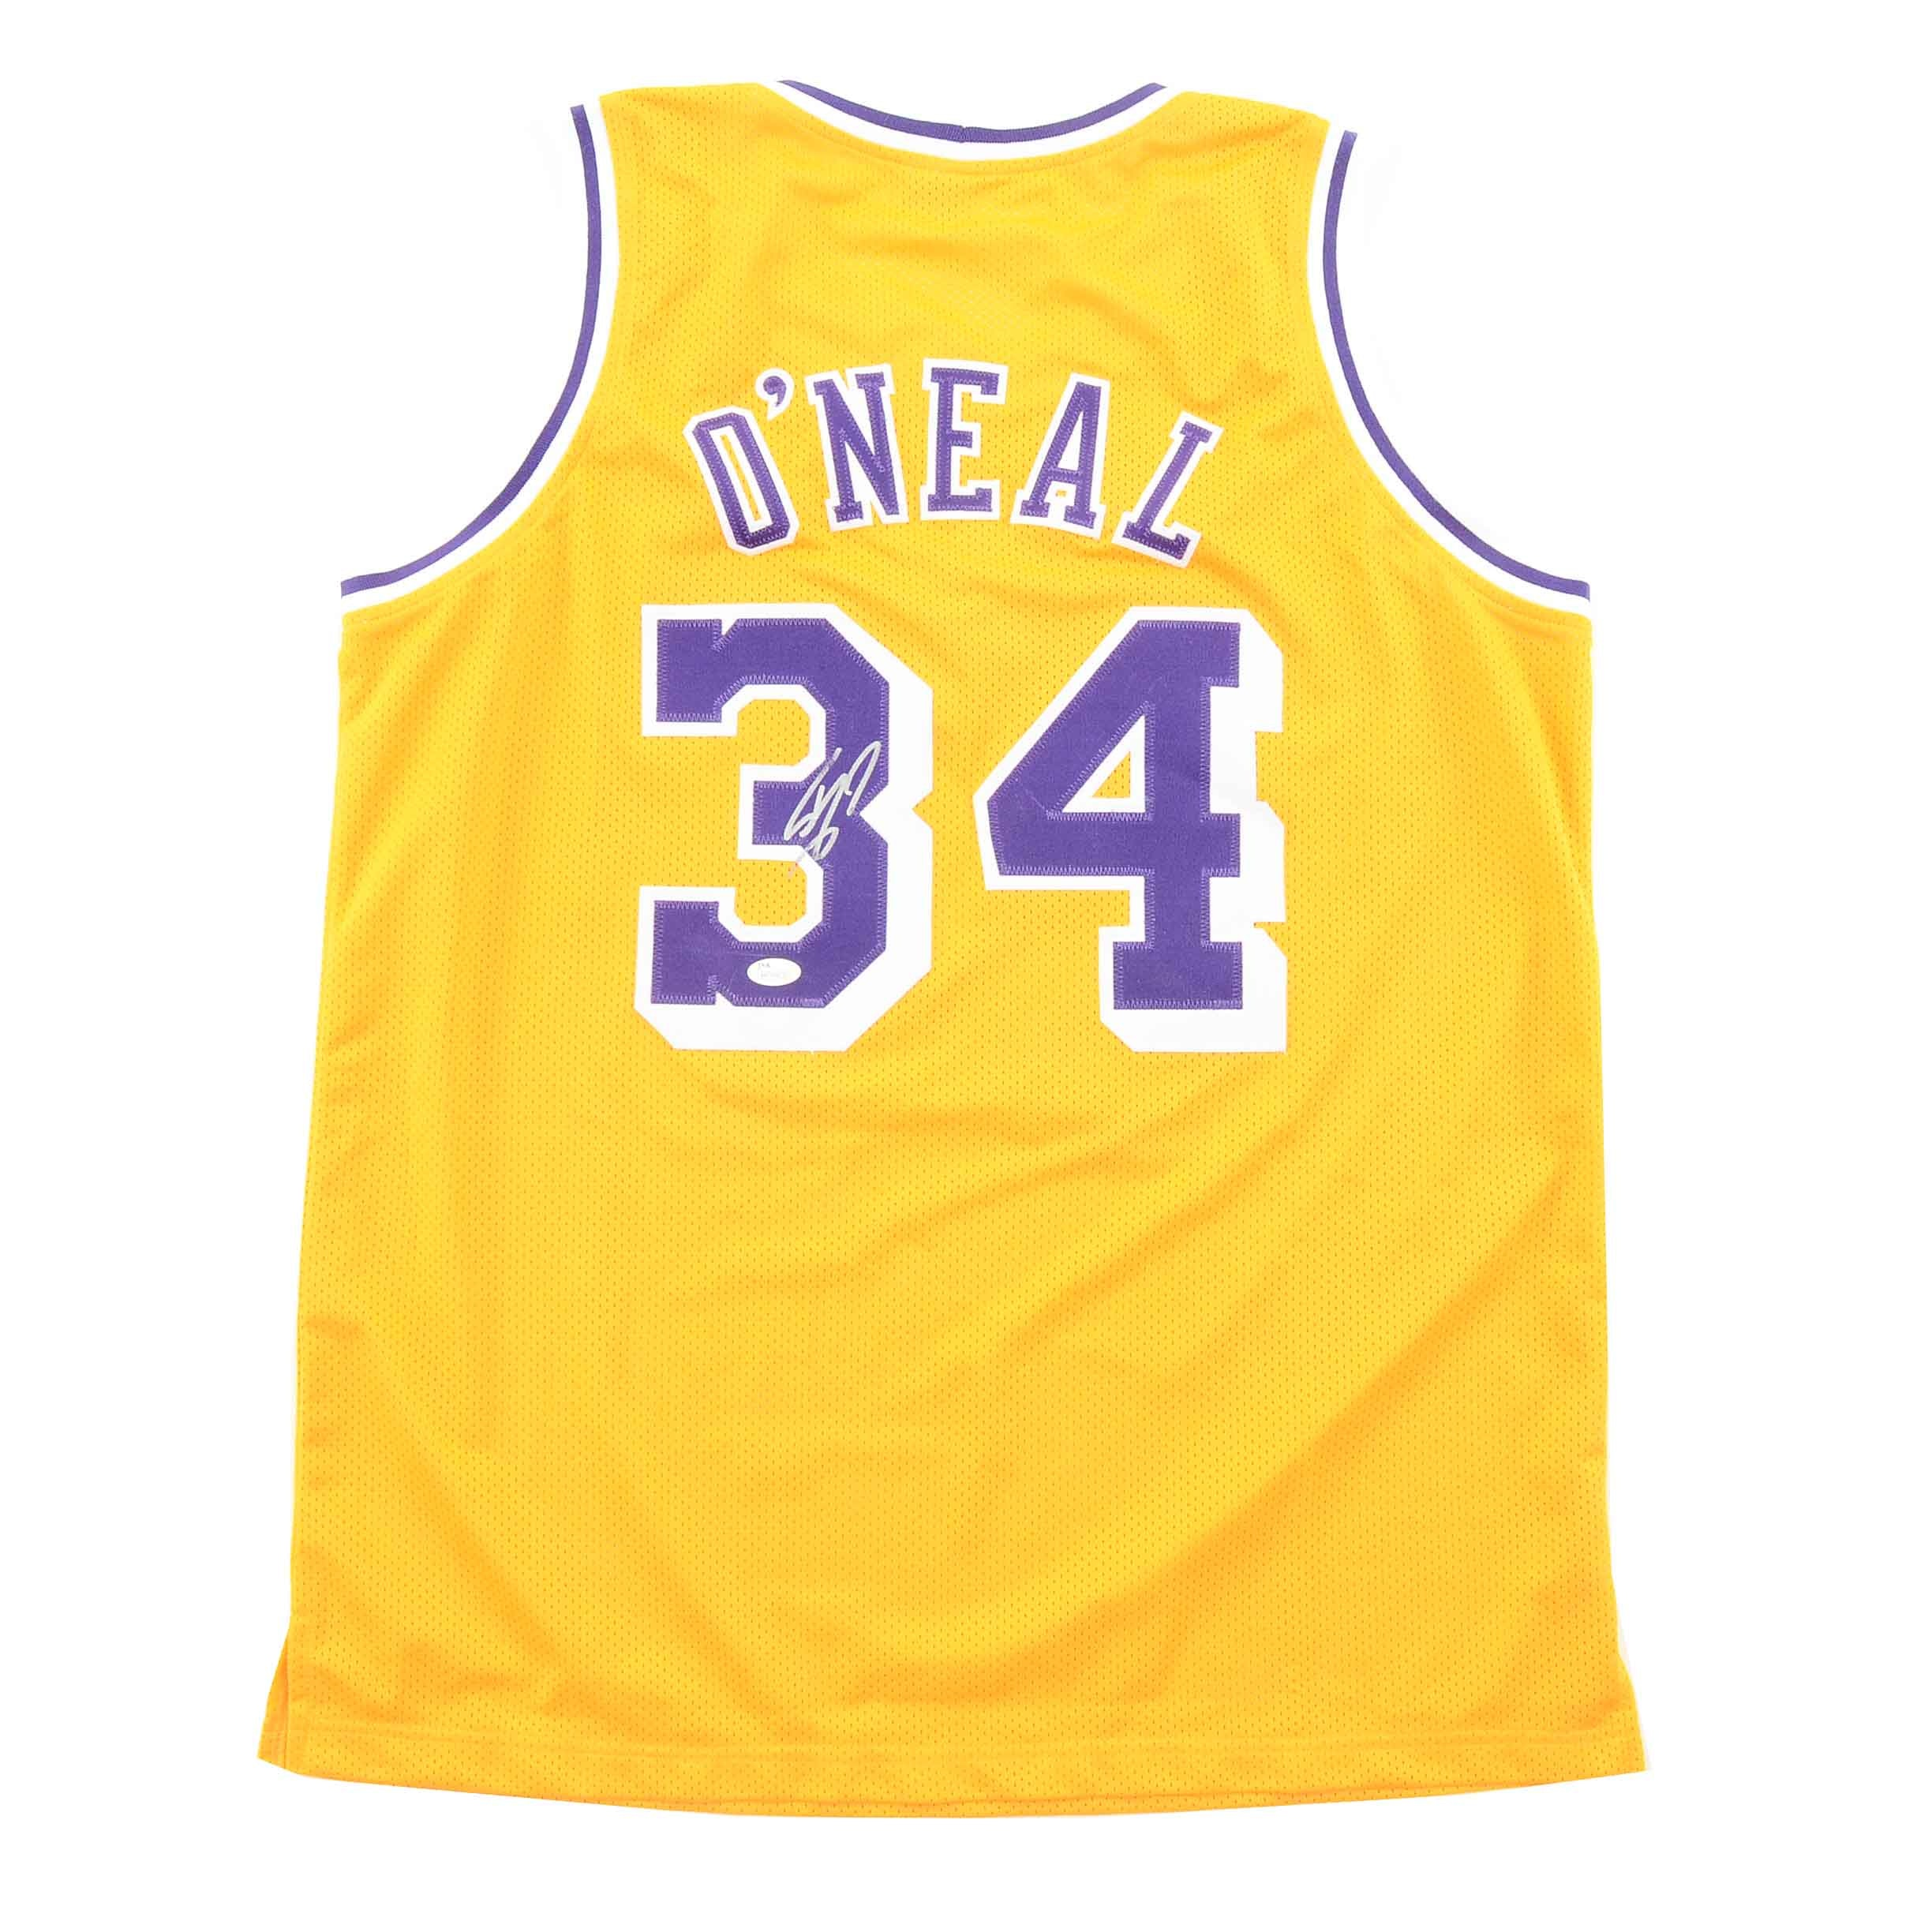 Shaquille O'Neal Signed Lakers Jersey  COA